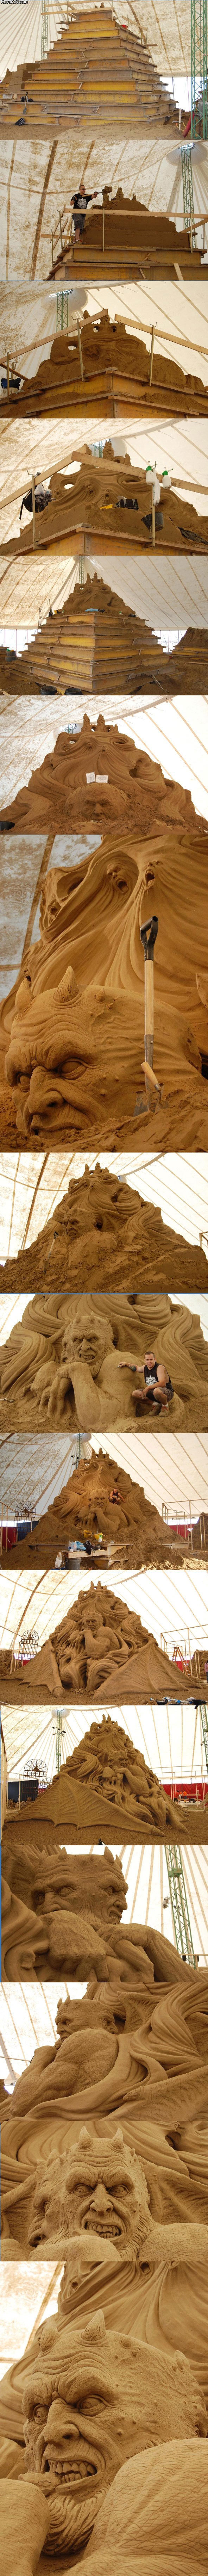 pimp sand castle. .. someone give this man a medal!